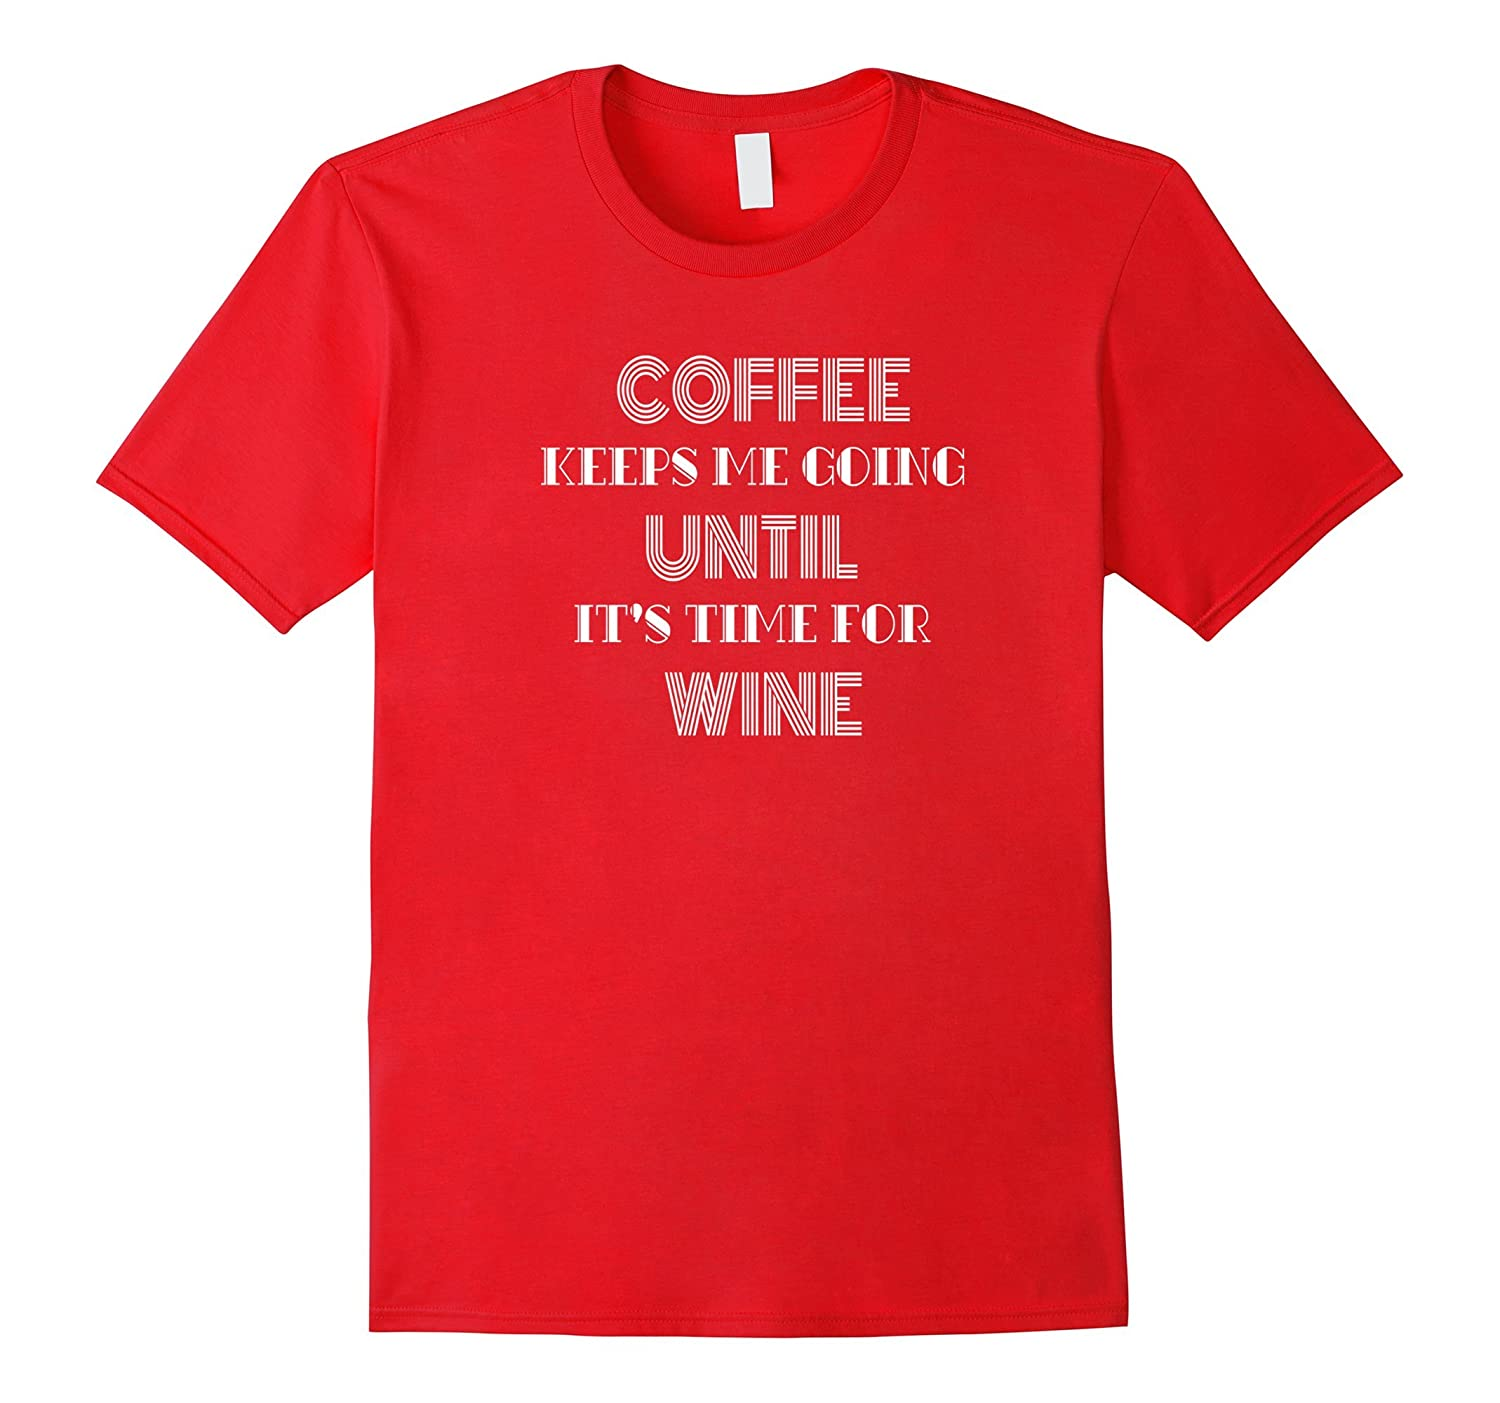 Coffee keeps me going until it's time for Wine Funny T shirt-Rose